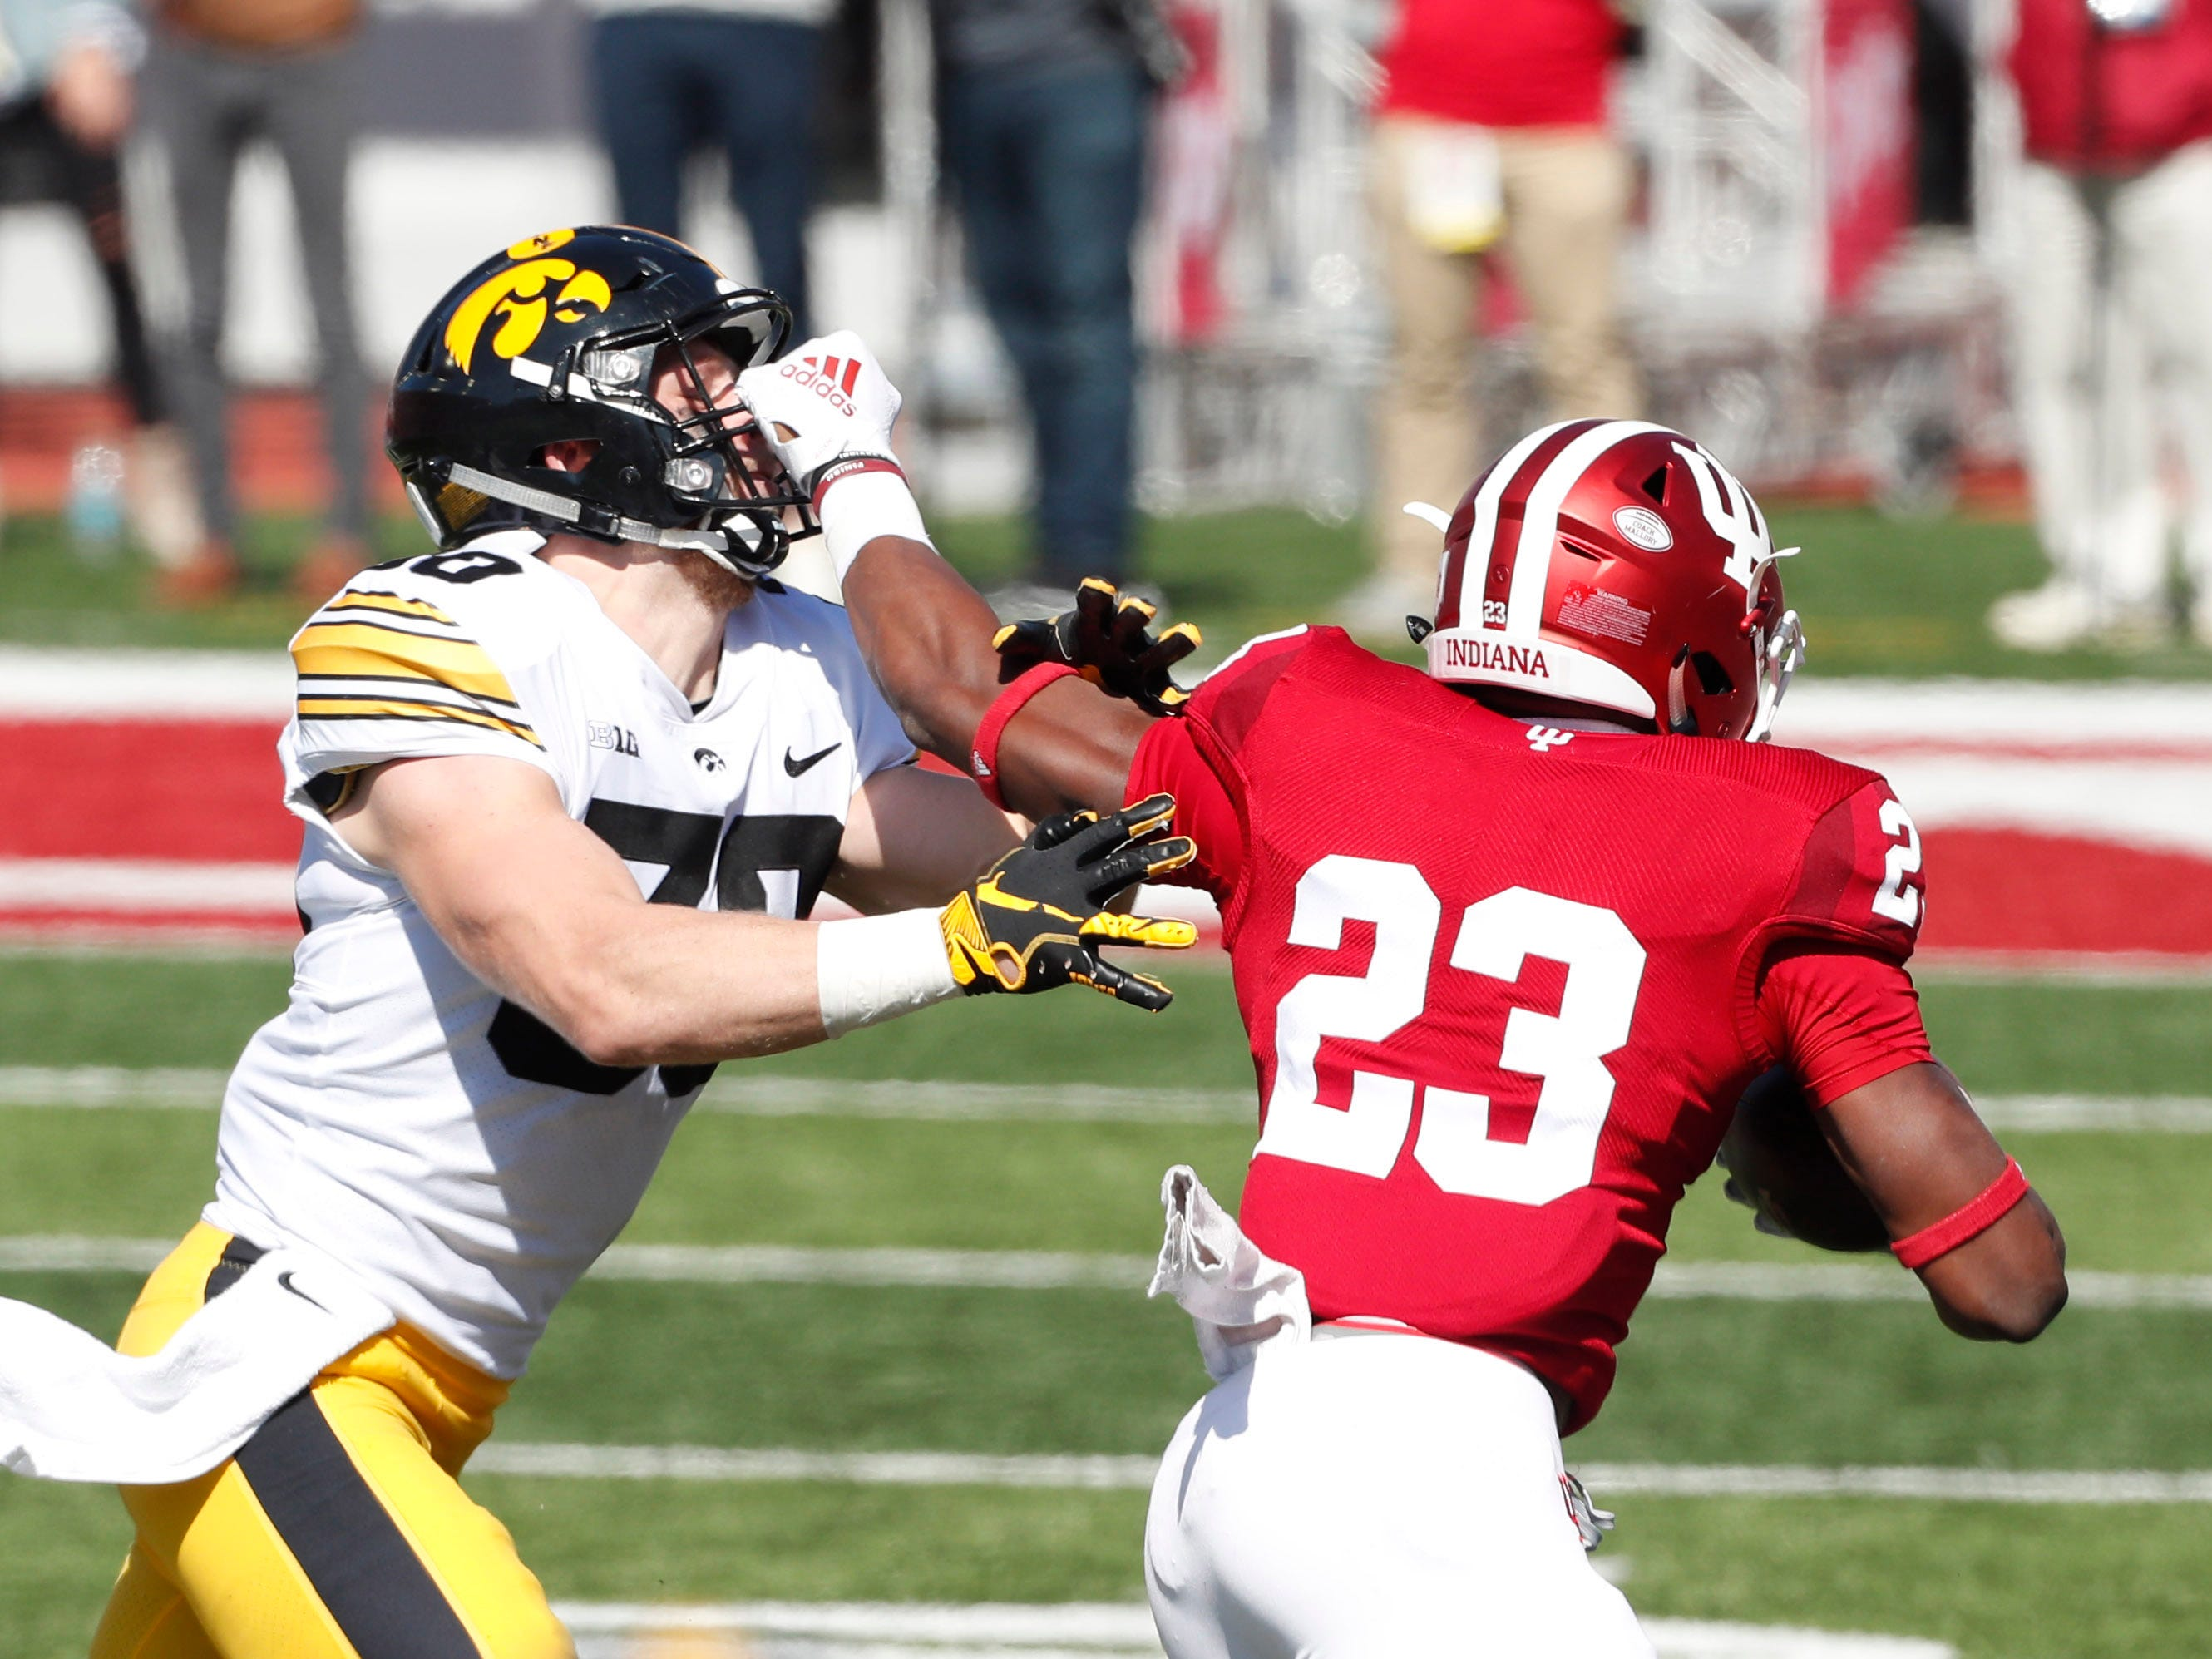 Indiana running back Ronnie Walker Jr. wards off Iowa defensive back Jake Gervase with a stiff arm (and a little bit of face mask).